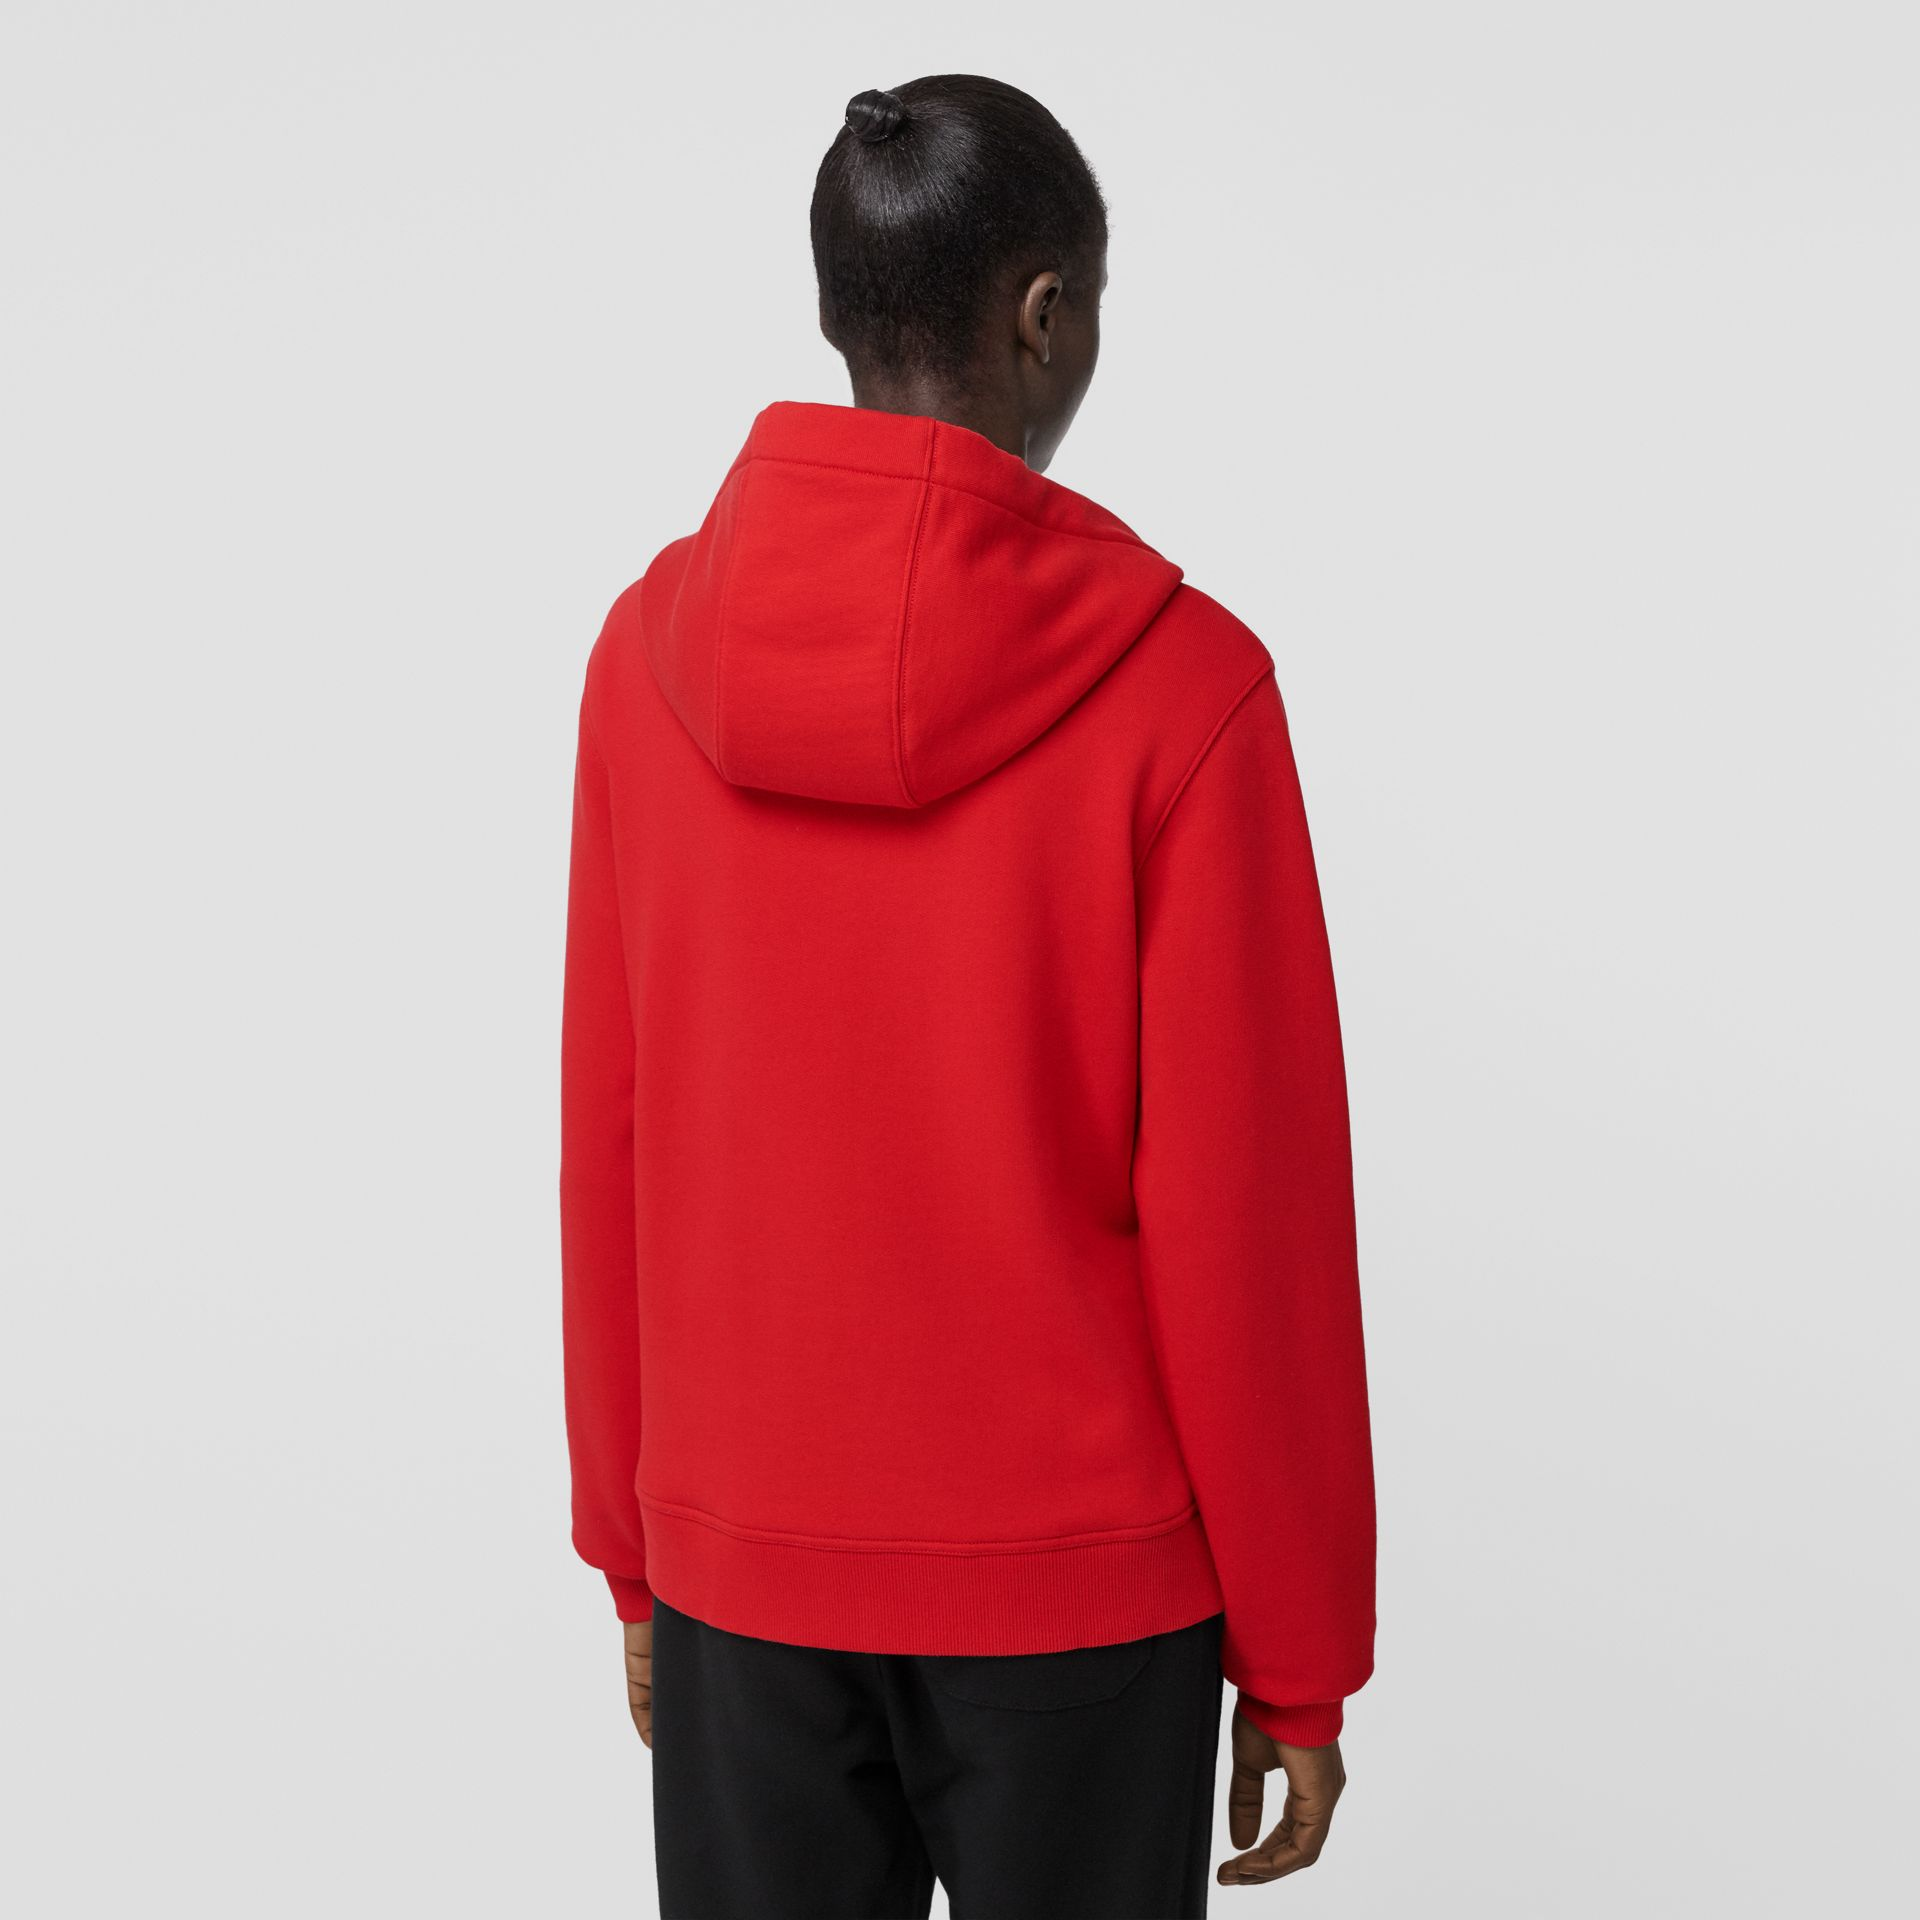 Monogram Motif Cotton Oversized Hooded Top in Bright Red - Women | Burberry - gallery image 2